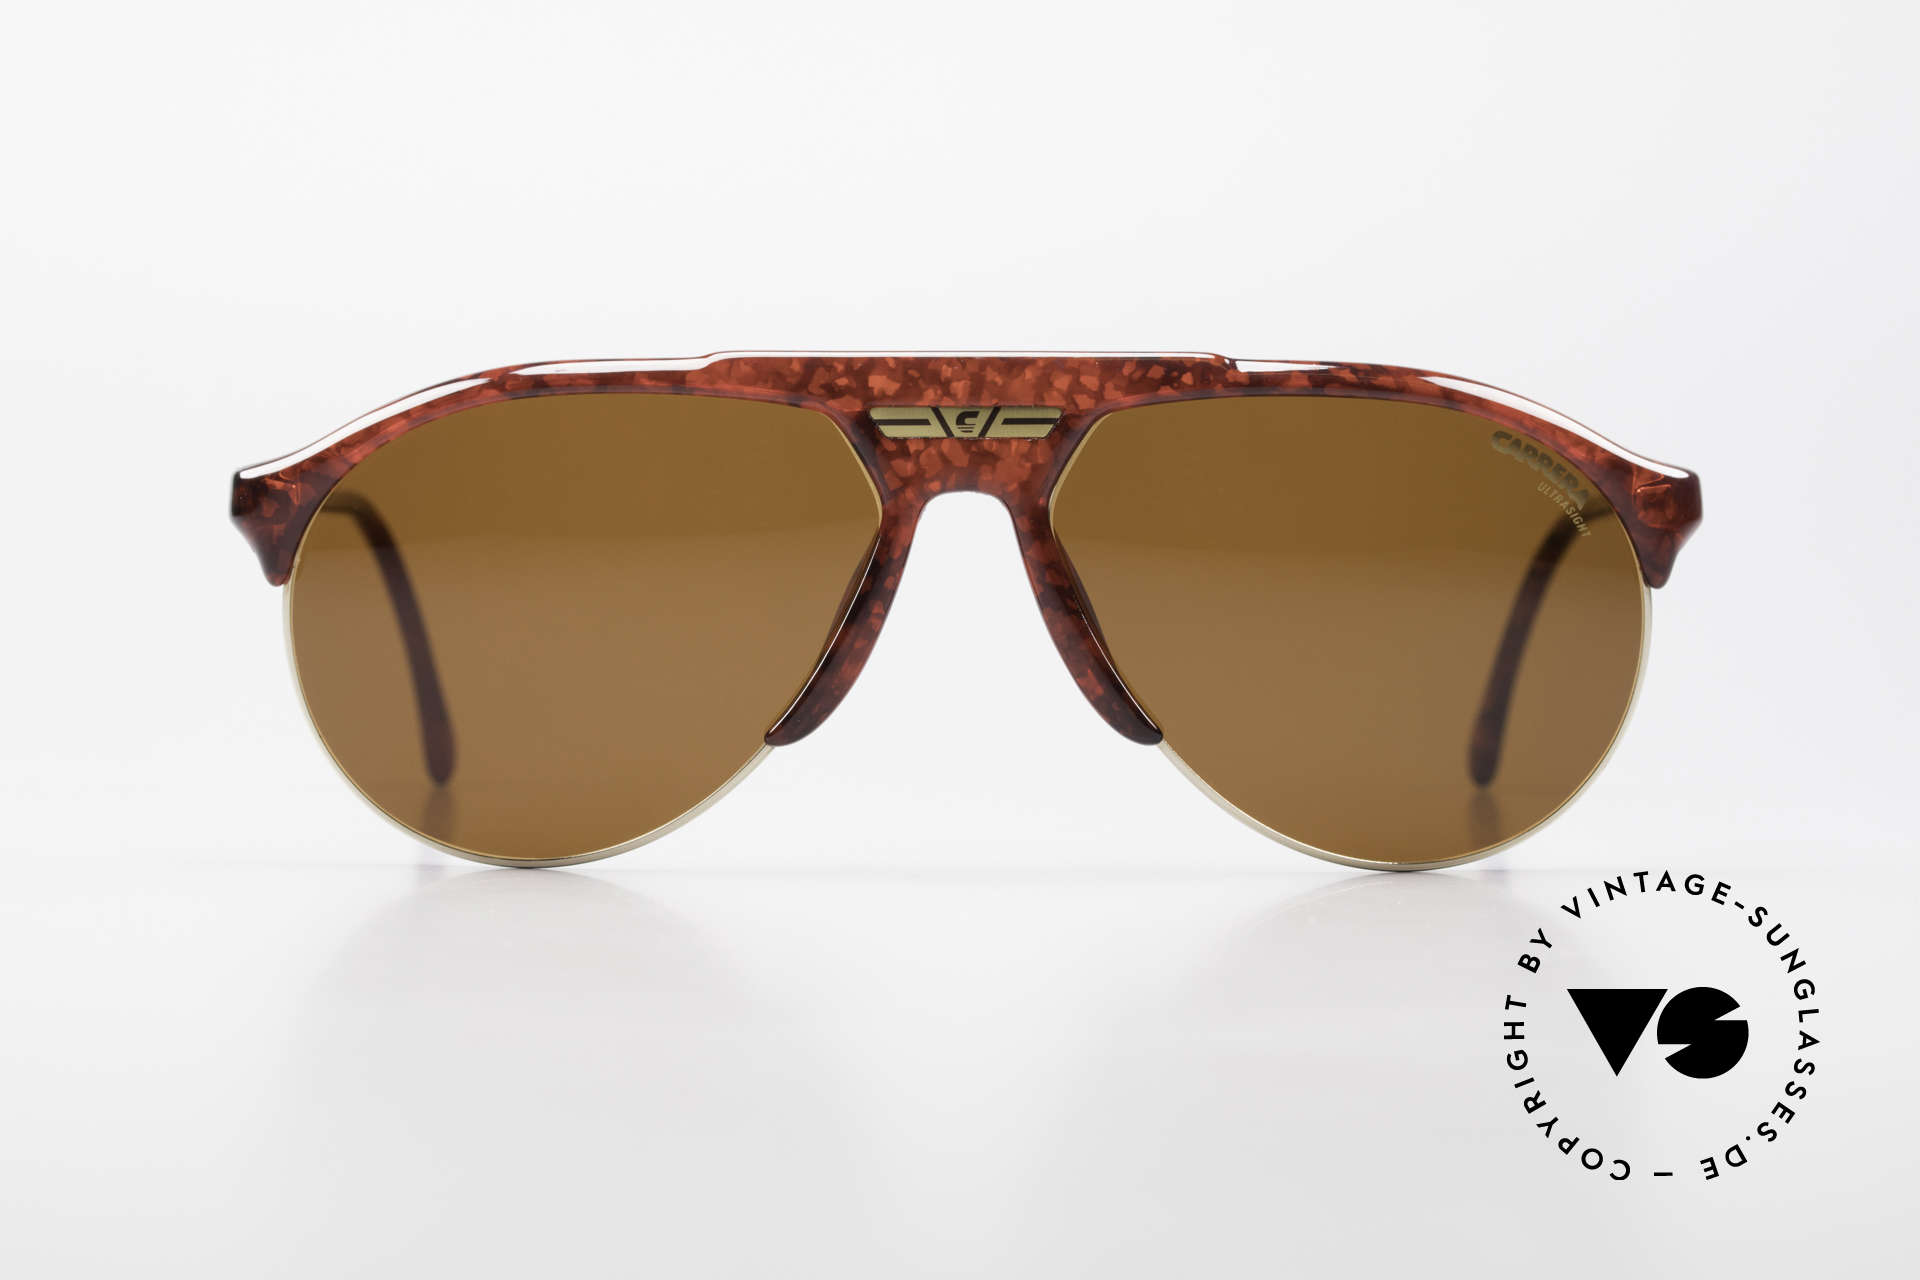 Carrera 5444 Wide Aviator Sunglasses 90's, everlasting Optyl-frame (shines like just produced), Made for Men